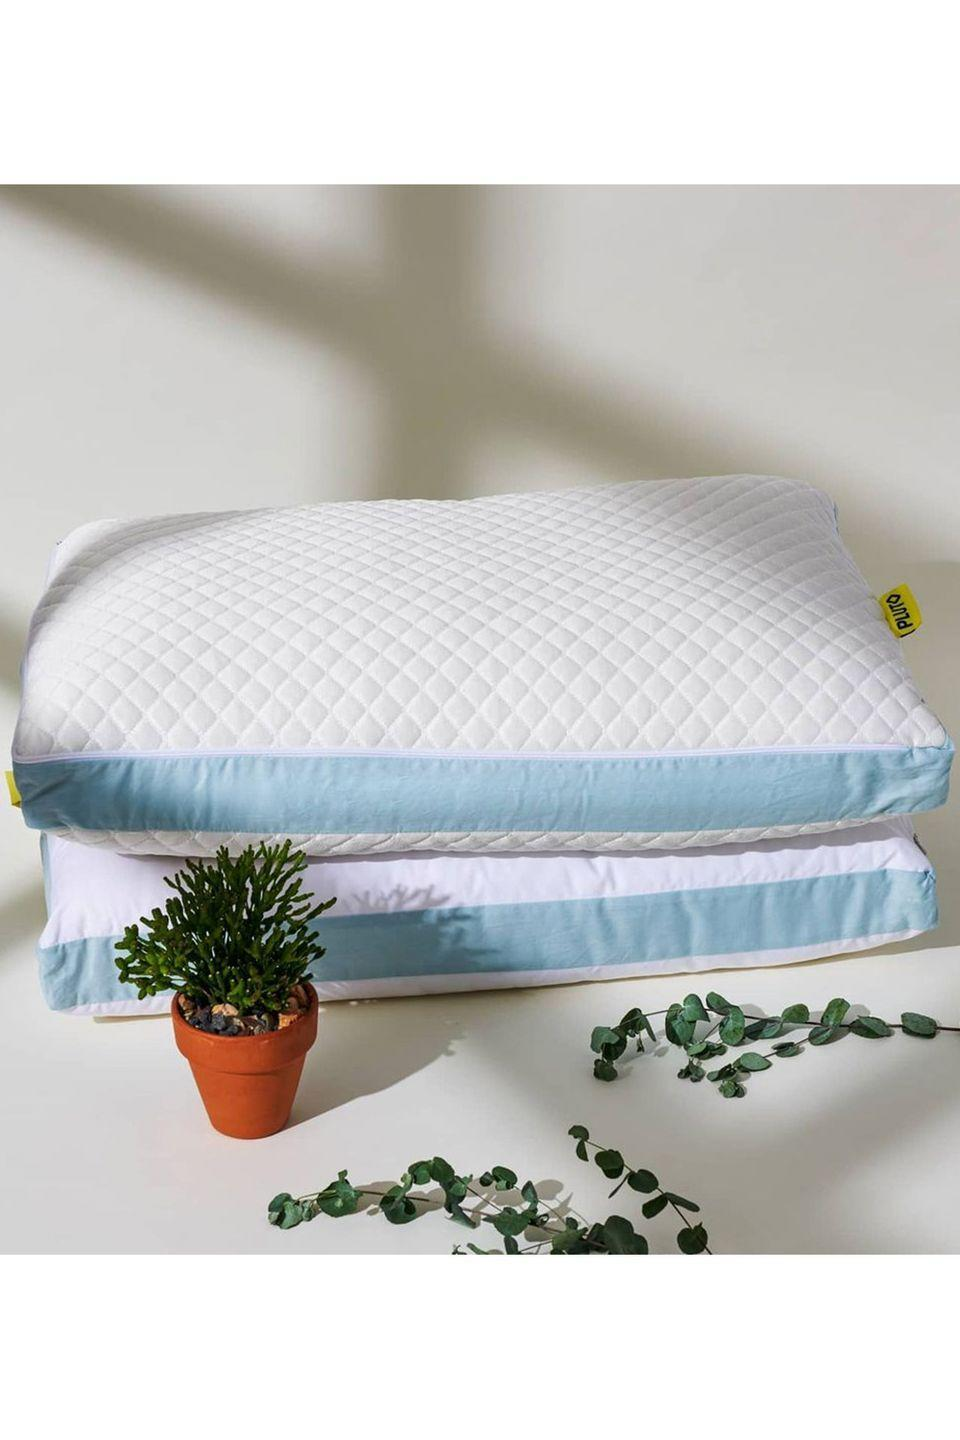 """<p>When you're a new parent, sleep is a precious, precious commodity. Ensure the few hours he <em>does </em>get are as restful as possible by giving him this personalized pillow. All he has to do is take a quick quiz, and this company will formulate a completely custom pillow to best suit his needs. </p><p><a class=""""link rapid-noclick-resp"""" href=""""https://go.redirectingat.com?id=74968X1596630&url=https%3A%2F%2Fplutopillow.com%2Fpages%2Fpersonalize&sref=https%3A%2F%2Fwww.oprahdaily.com%2Flife%2Fg26961897%2Fgifts-for-new-dads%2F"""" rel=""""nofollow noopener"""" target=""""_blank"""" data-ylk=""""slk:Shop Now"""">Shop Now</a></p>"""